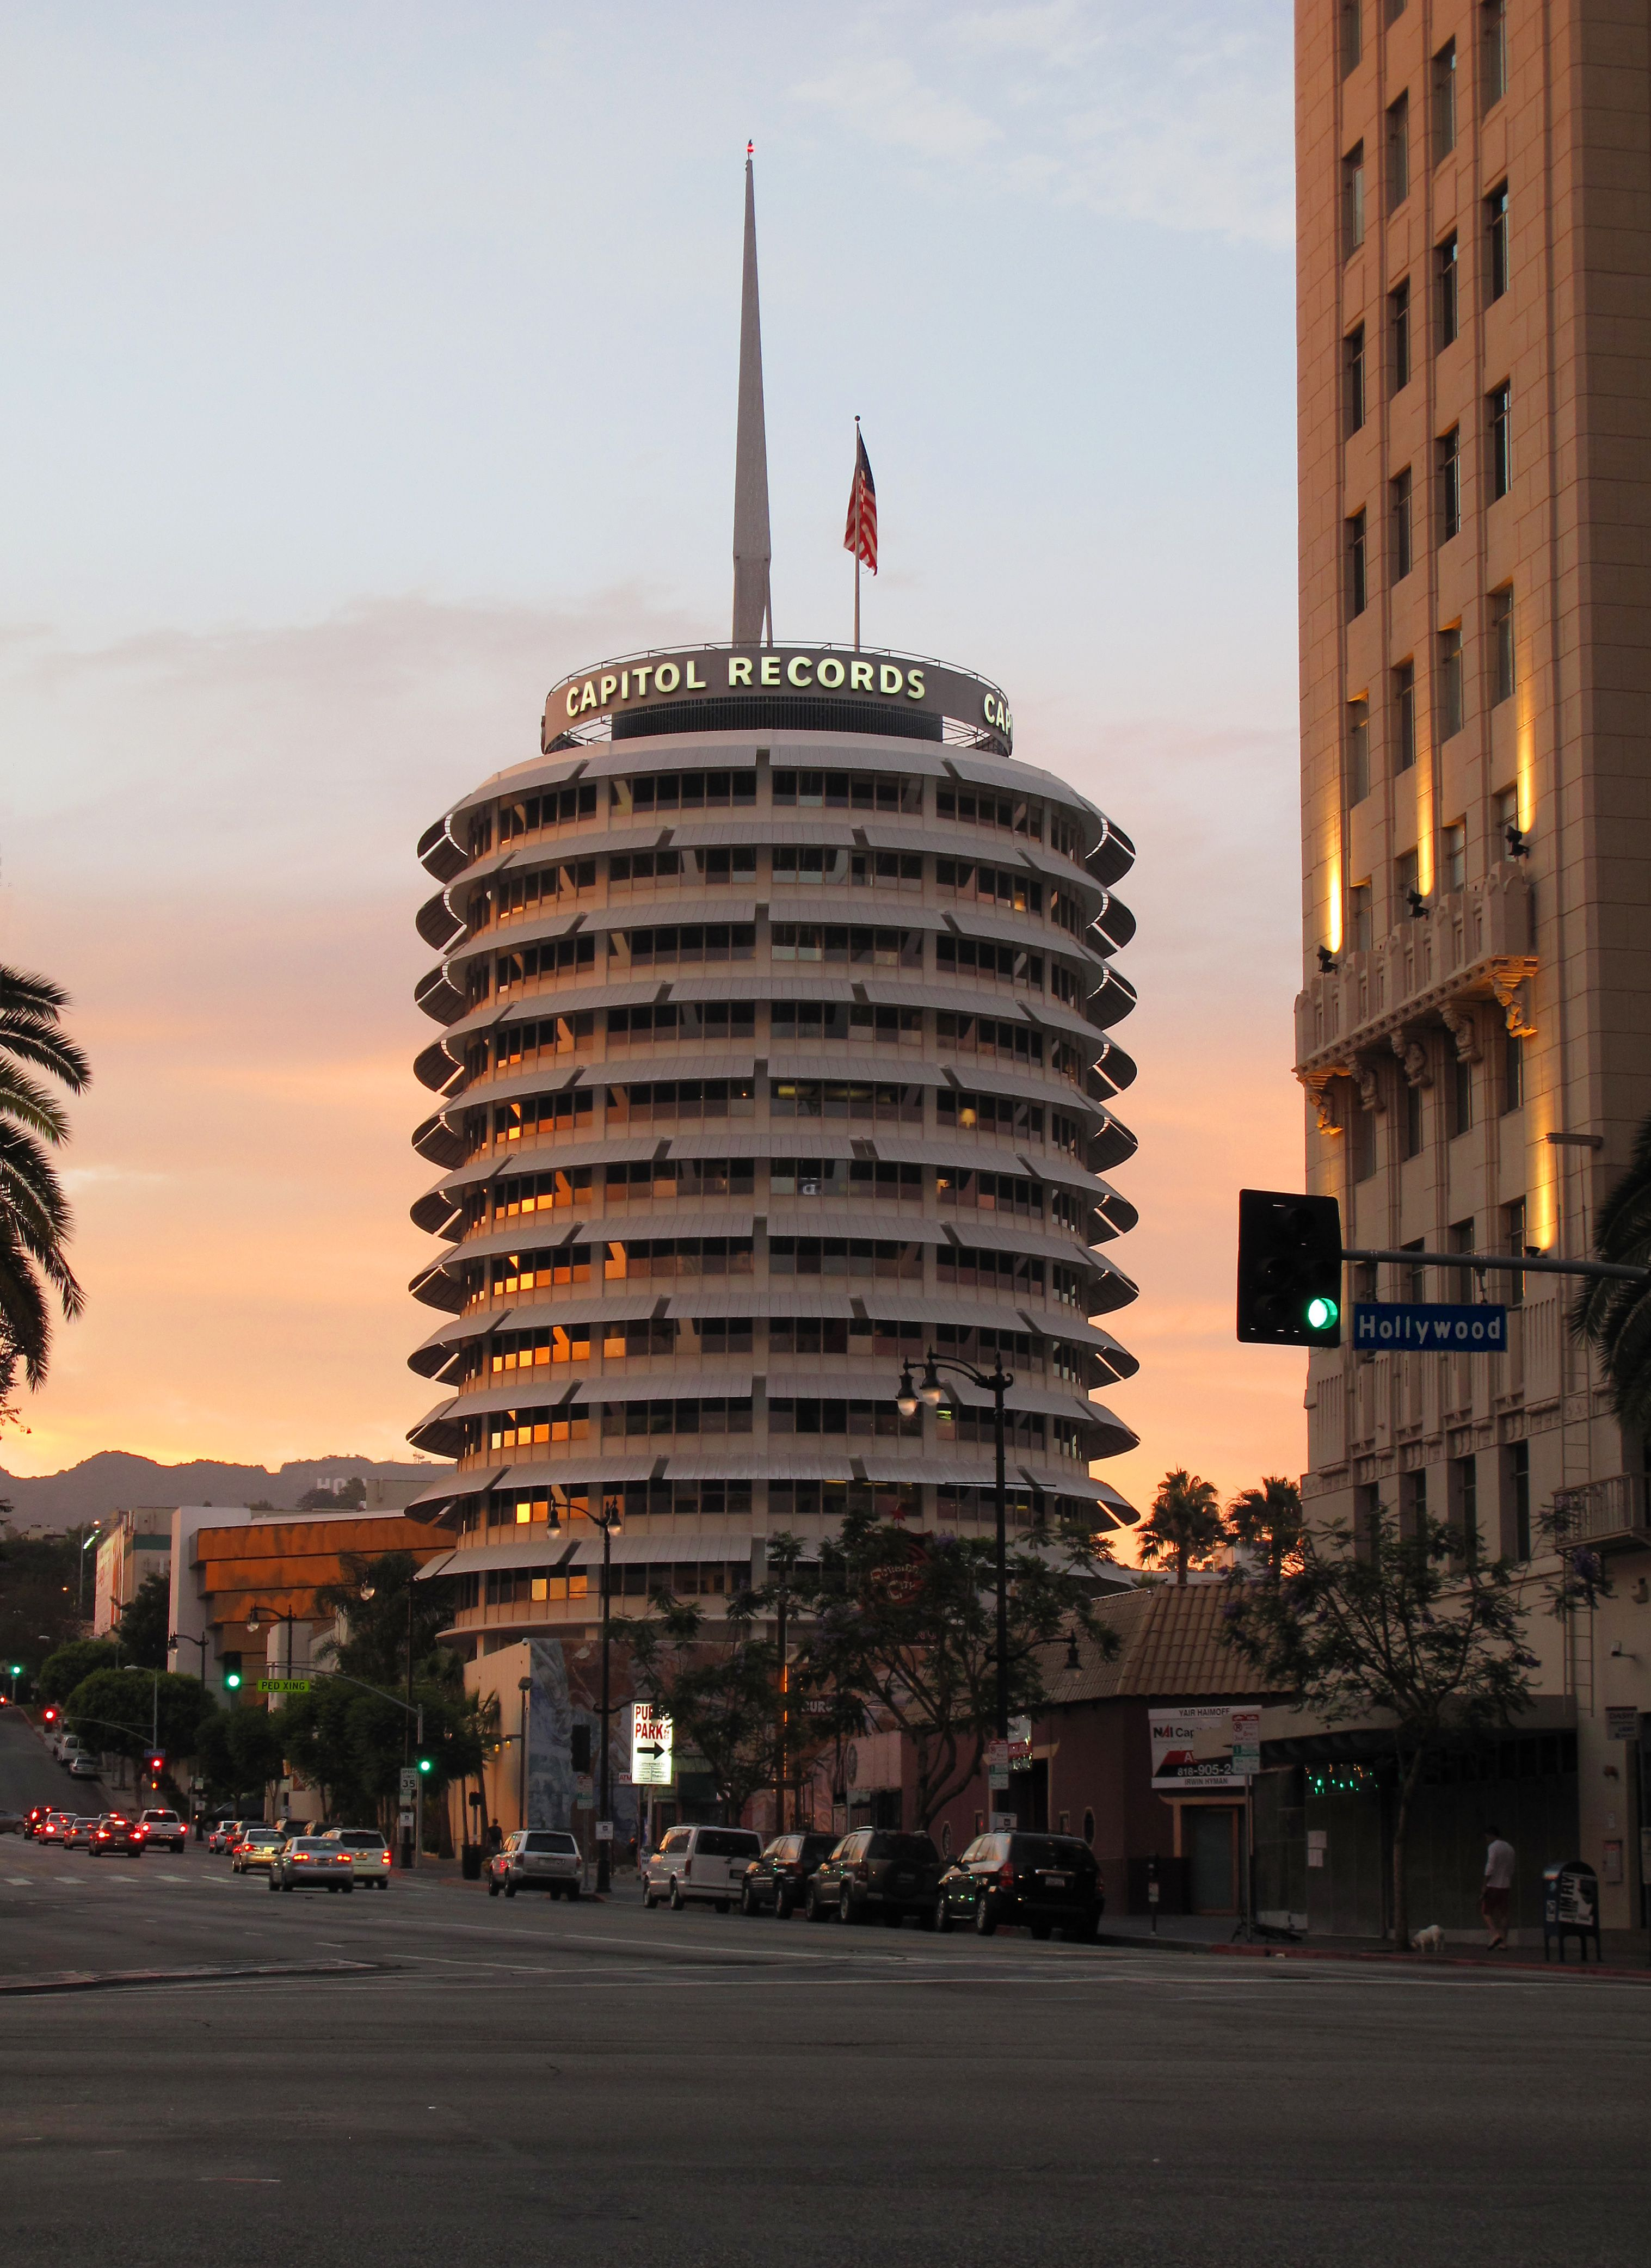 Capitol Records Building Wikipedia The Free Encyclopedia Los Angeles Architecture Famous Buildings Capitol Records